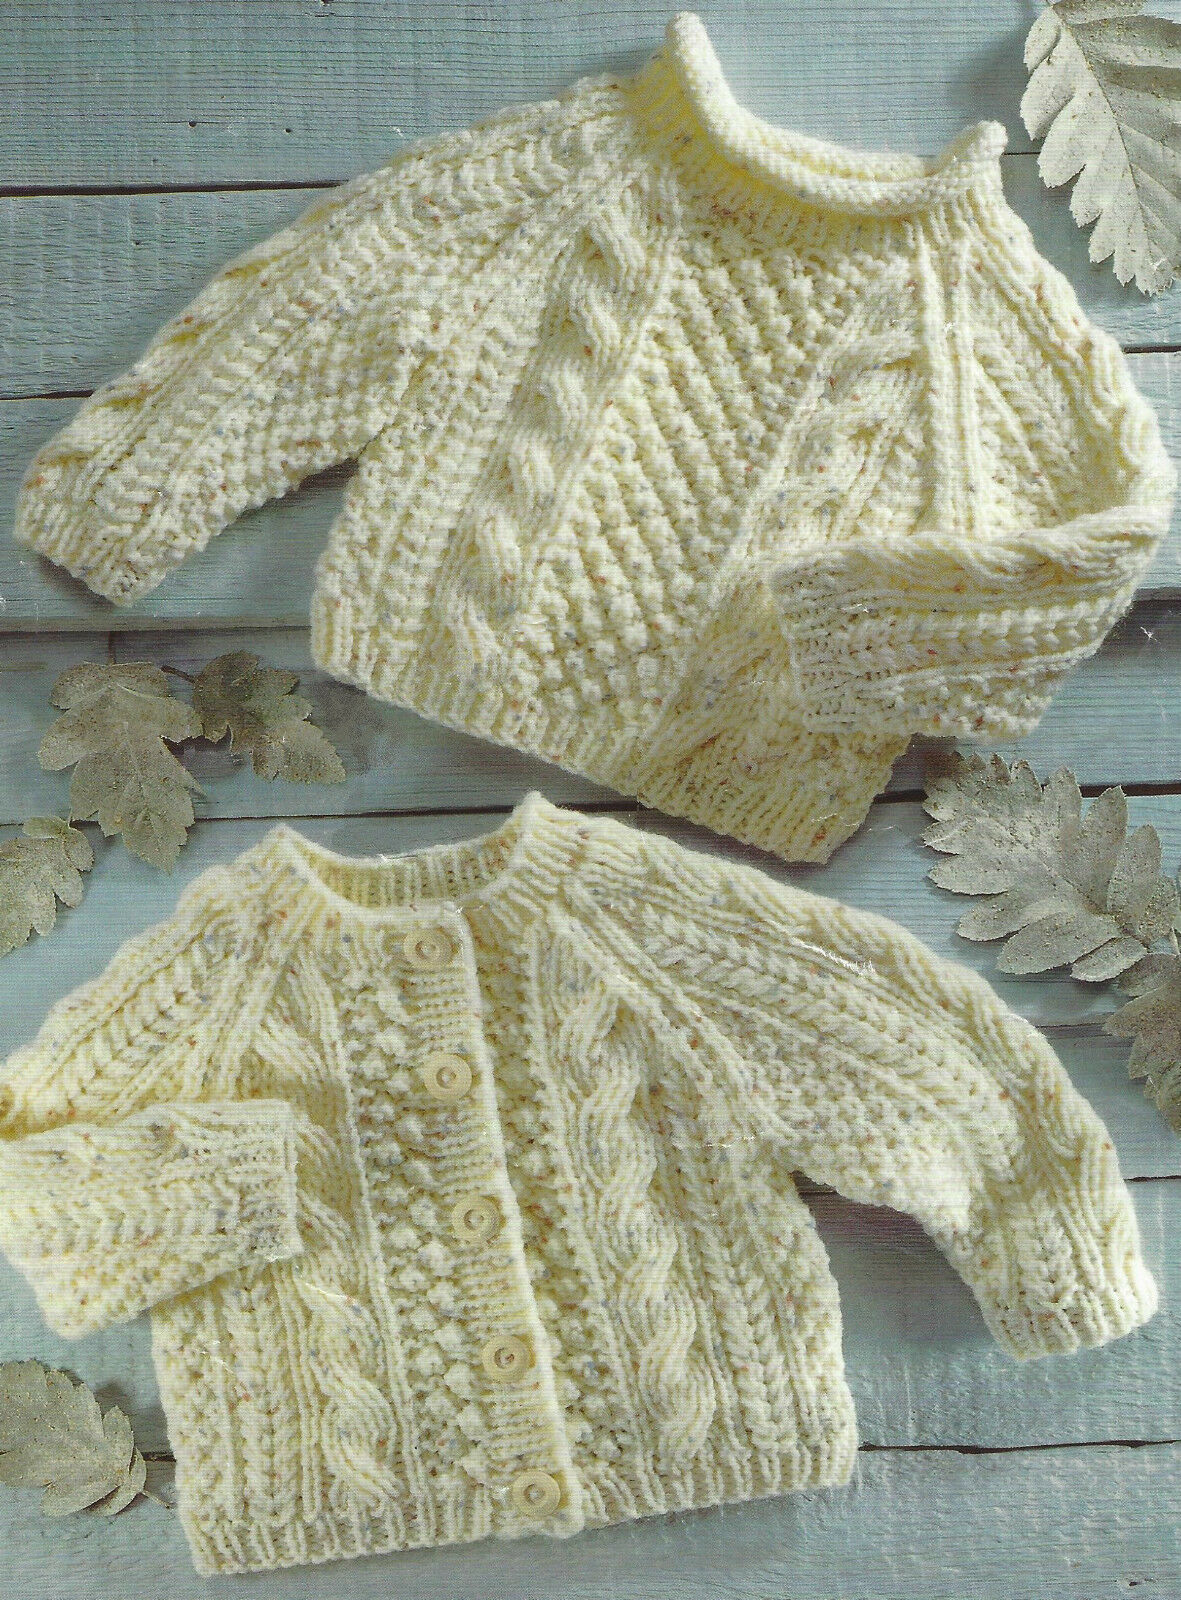 Free Knitting Pattern Baby Cable Cardigan : Aran Knitting Pattern Cardigan Sweater with cables Baby ...